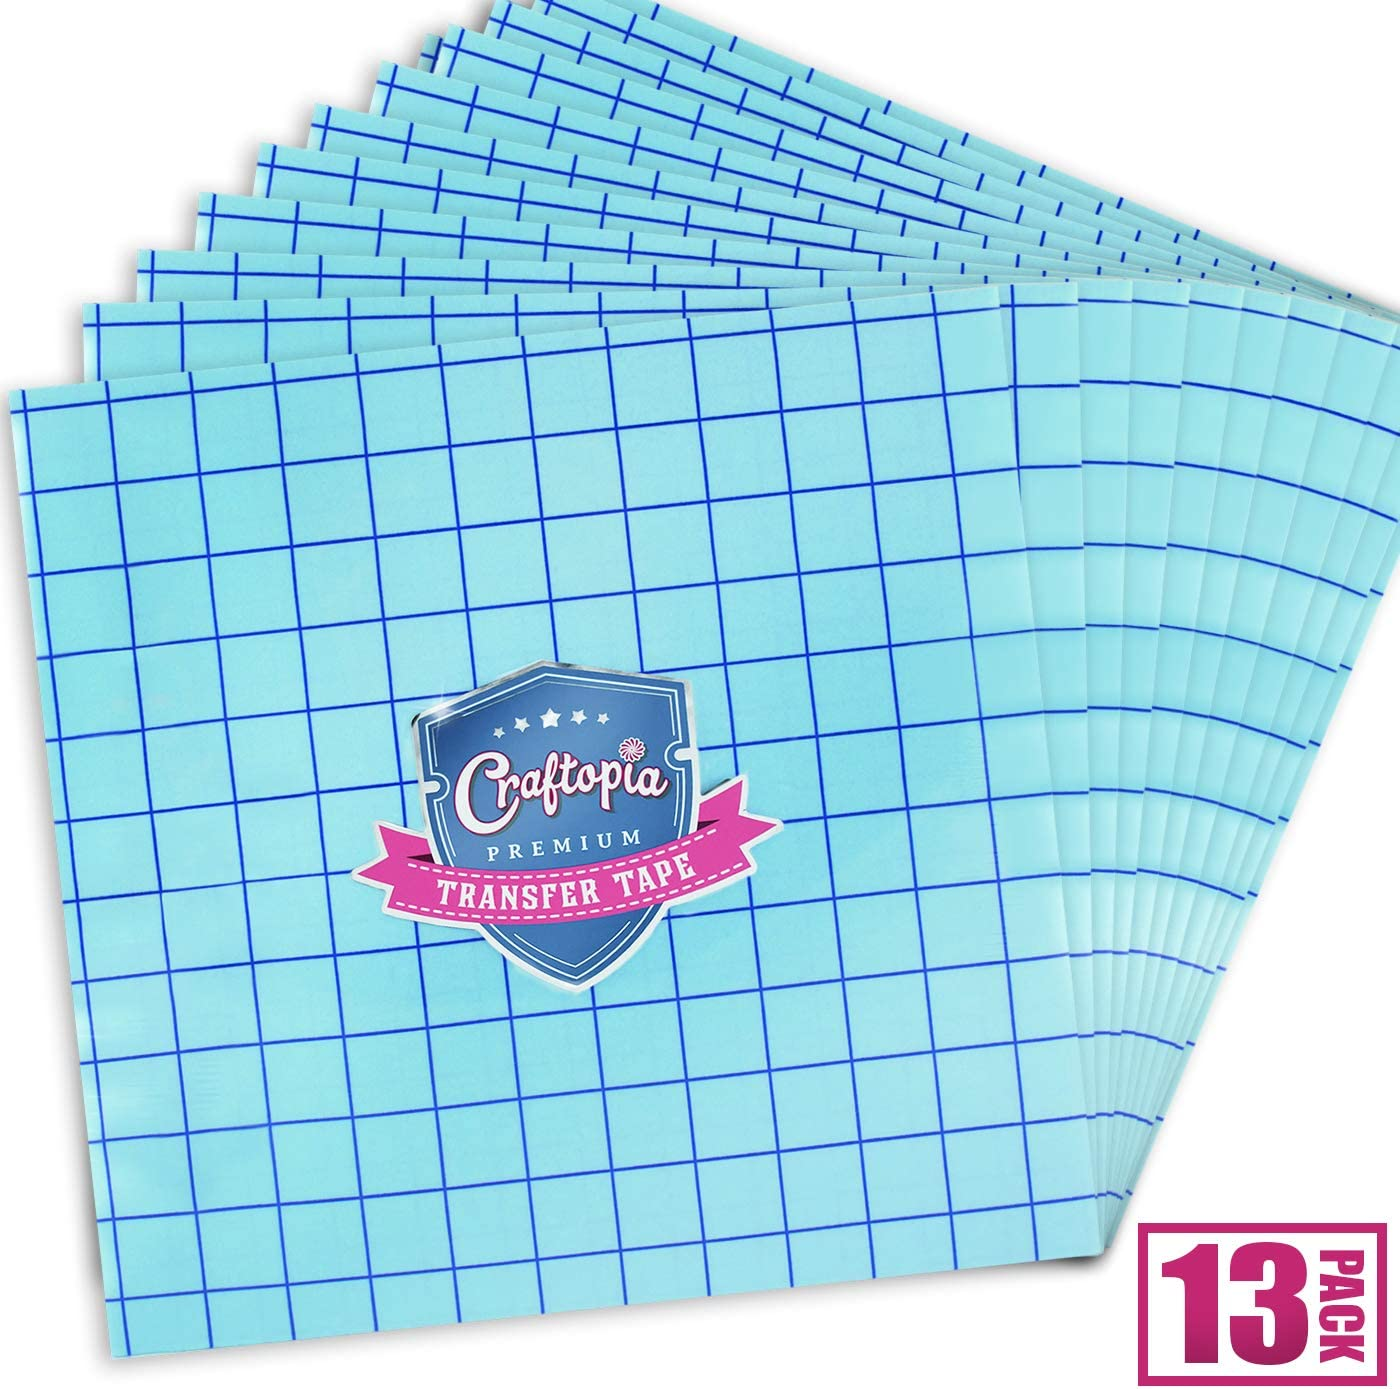 13 Sheets Transfer Tape Sheets for Vinyl 12x12 Clear with Blue Alignment Grid Compatible with Cricut Cameo Self Adhesive Vinyl for Signs Stickers Decals Walls Doors /& Windows